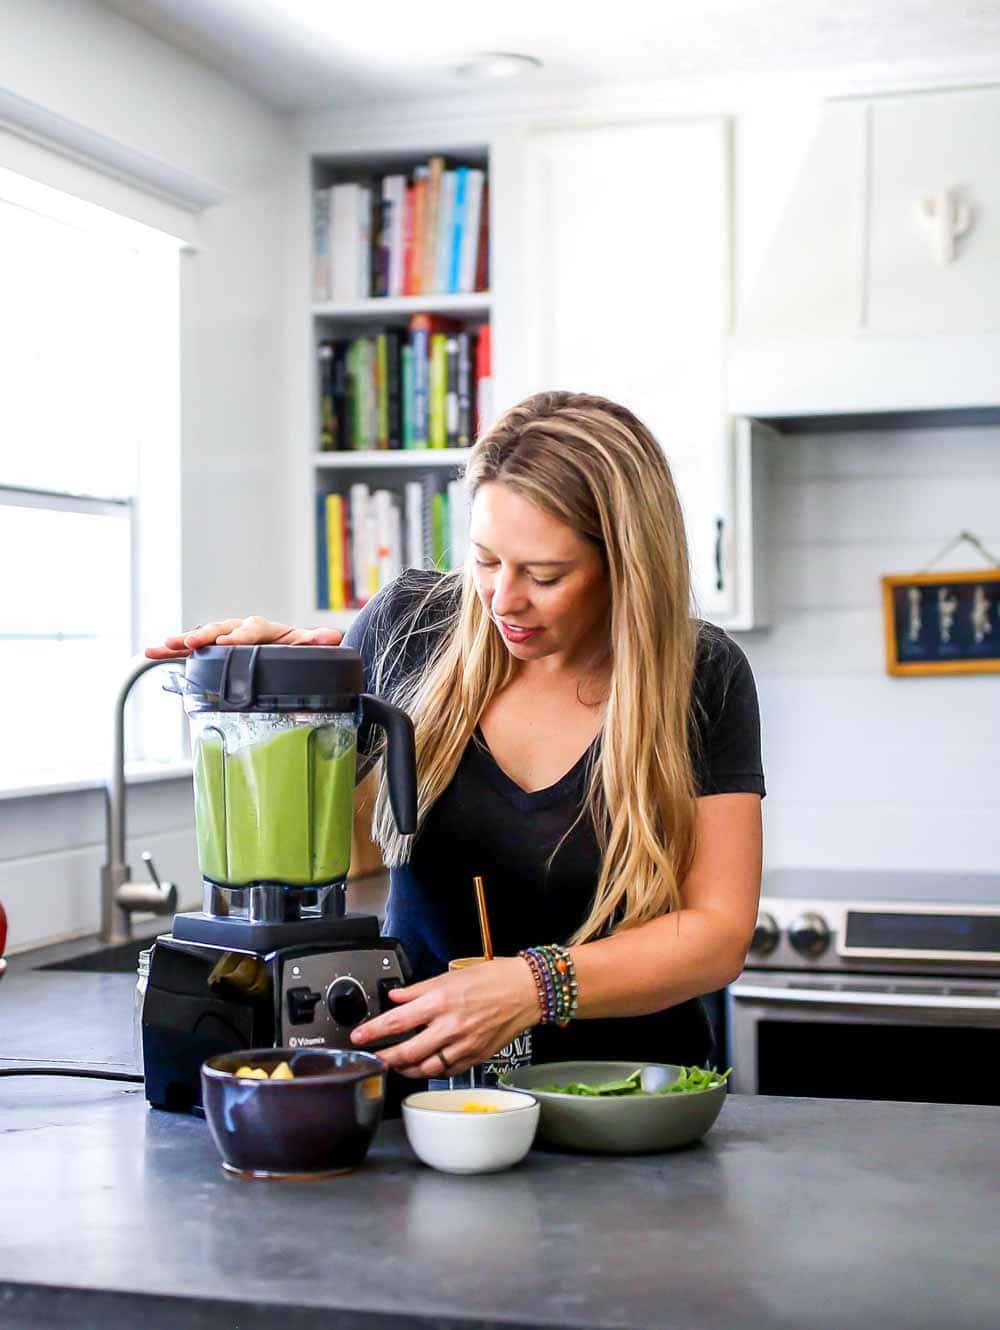 Blending a weight loss smoothie in the kitchen with spinach to help burn fat.